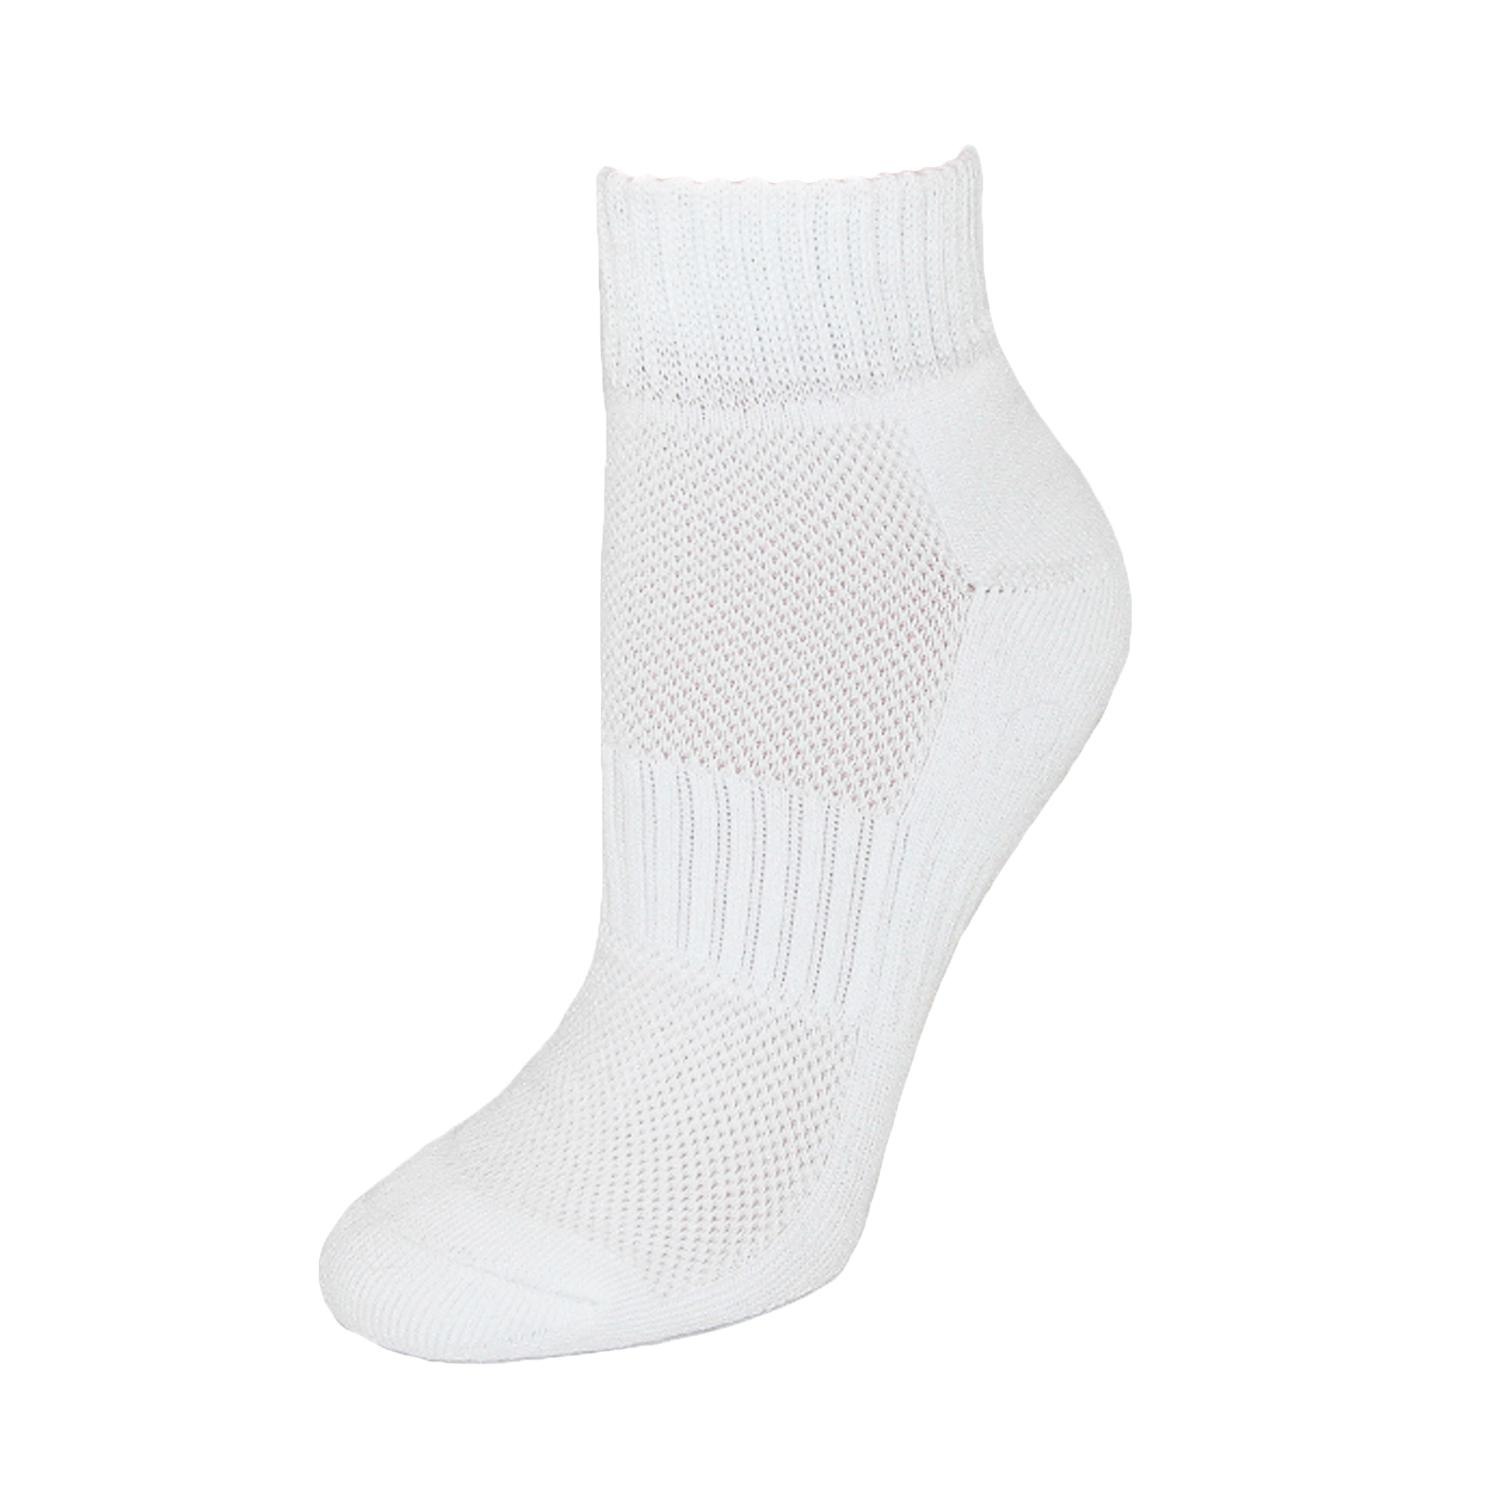 CTM_Mens_Cotton_Arch_Support_Ankle_Sock_Pack_of_3_